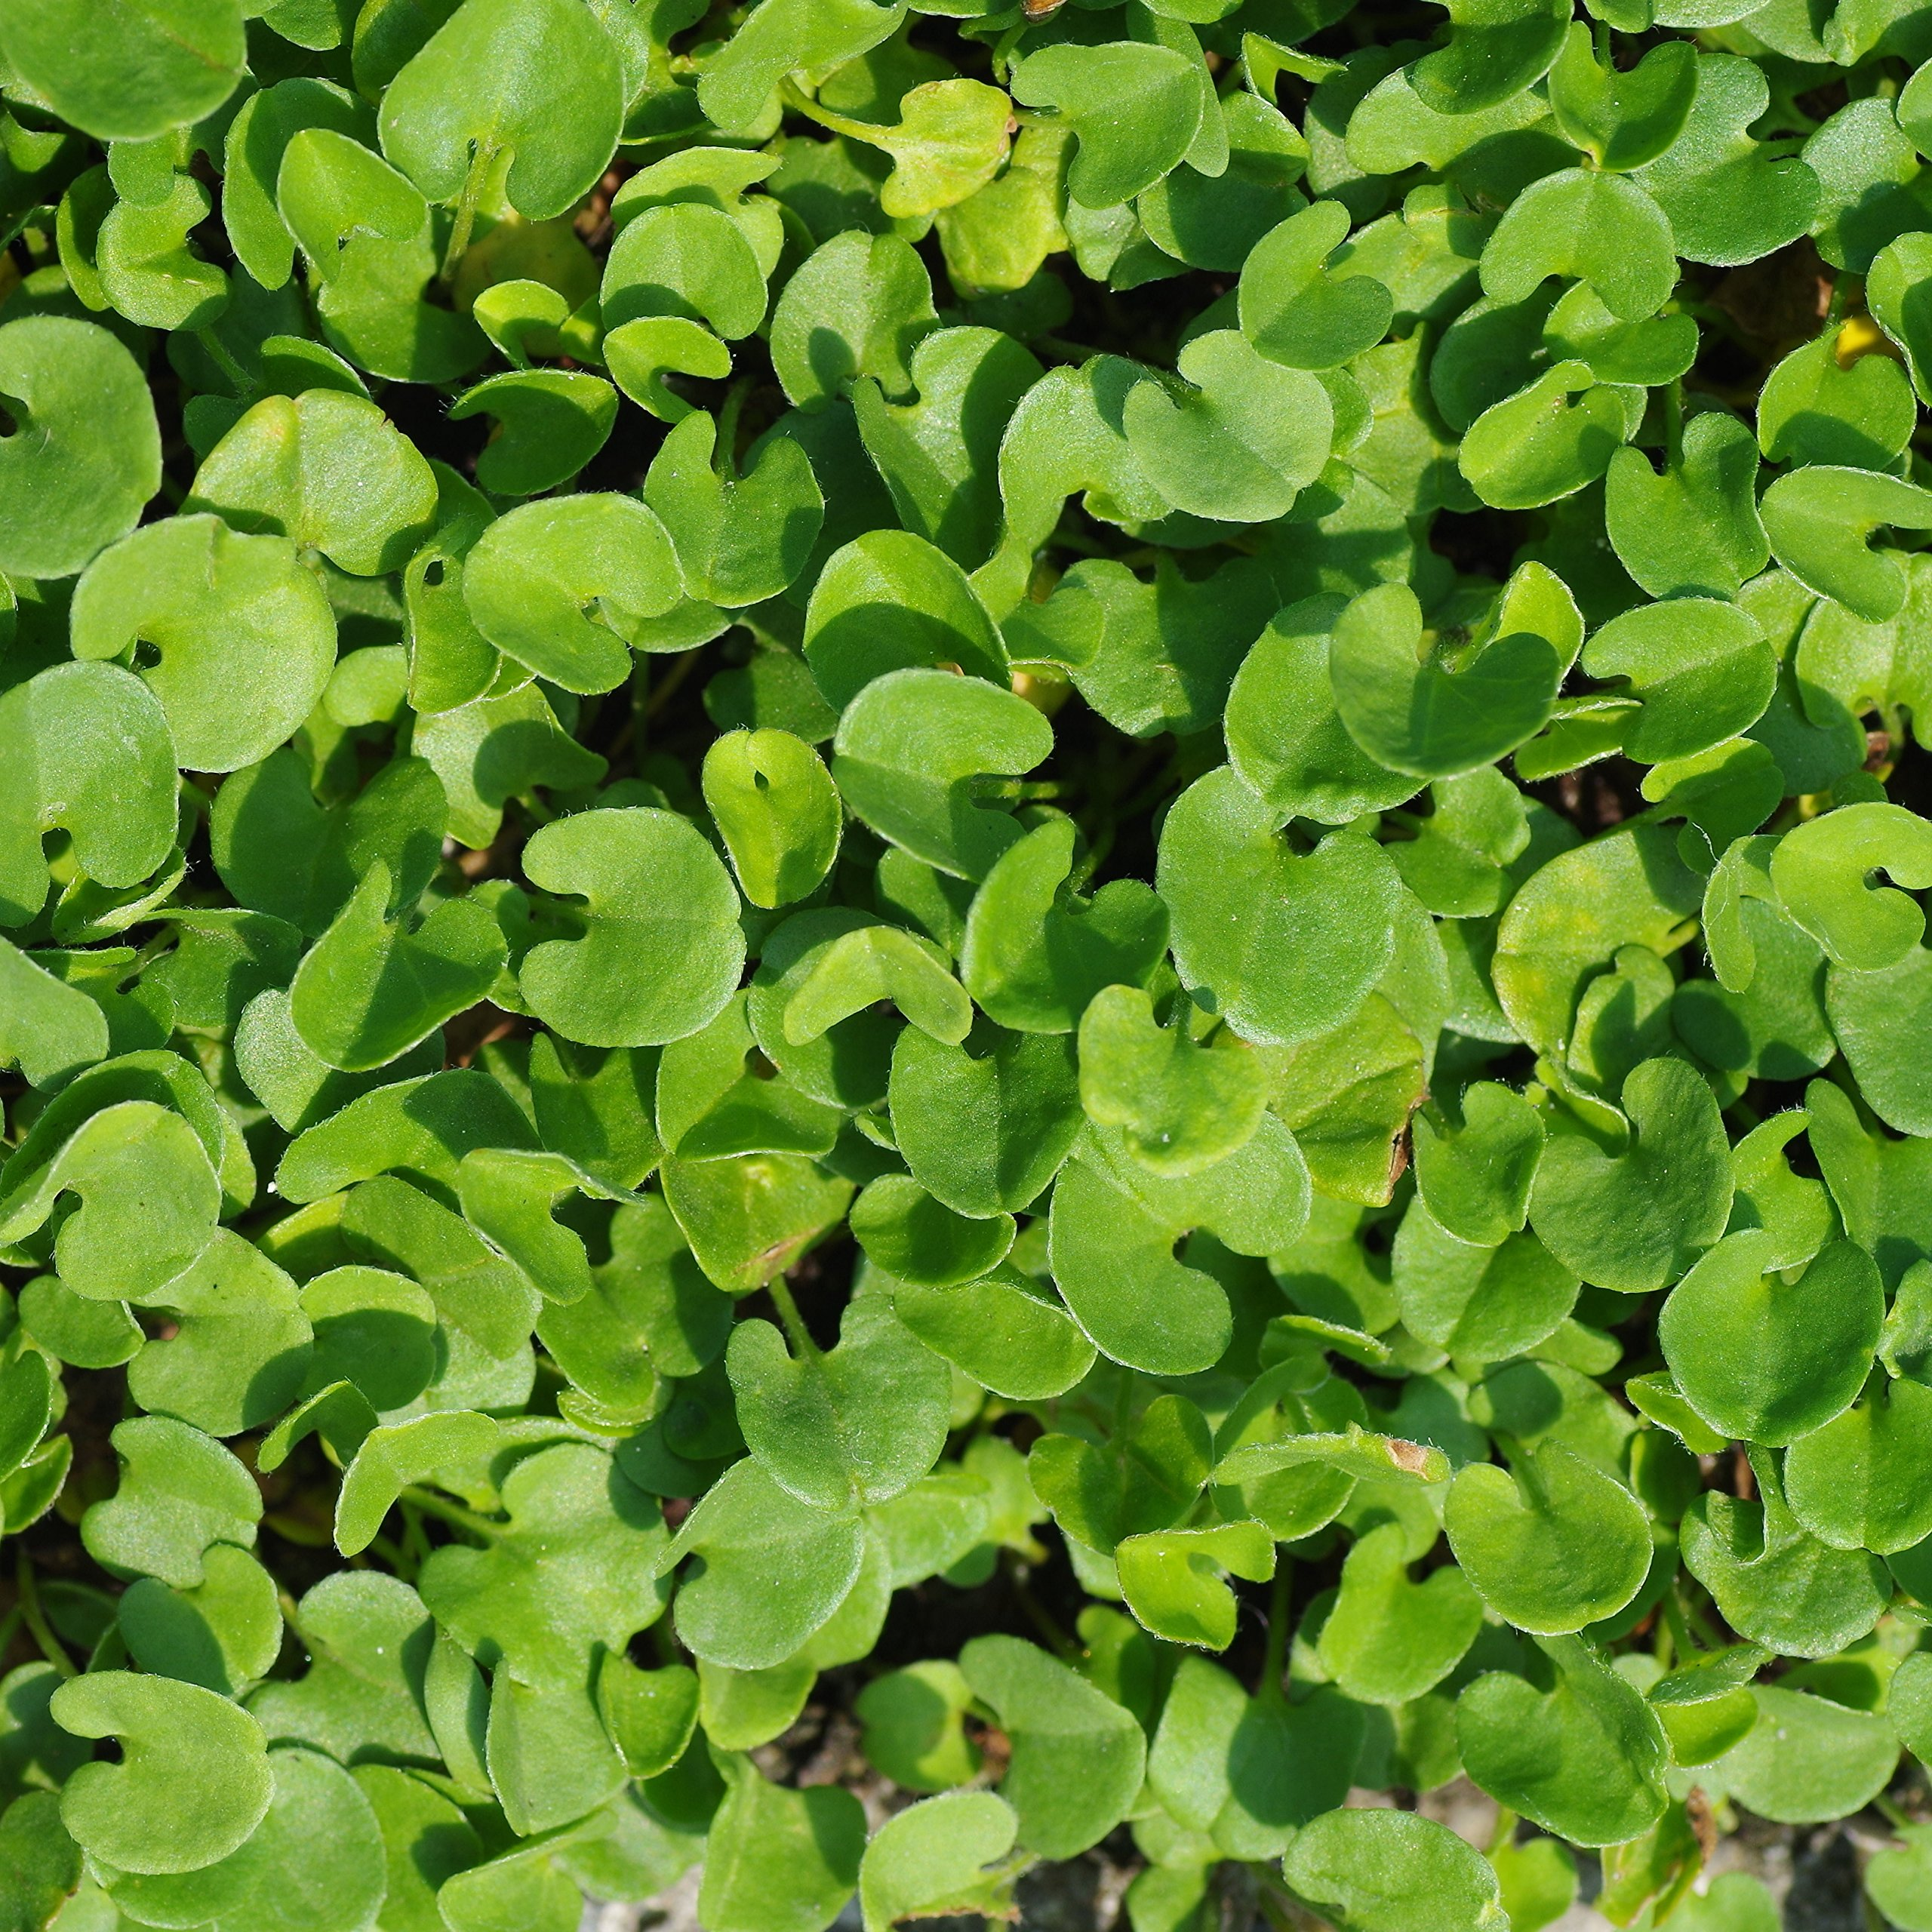 Outsidepride Dichondra Repens Ground Cover Plant Seed - 5 LB by Outsidepride (Image #2)